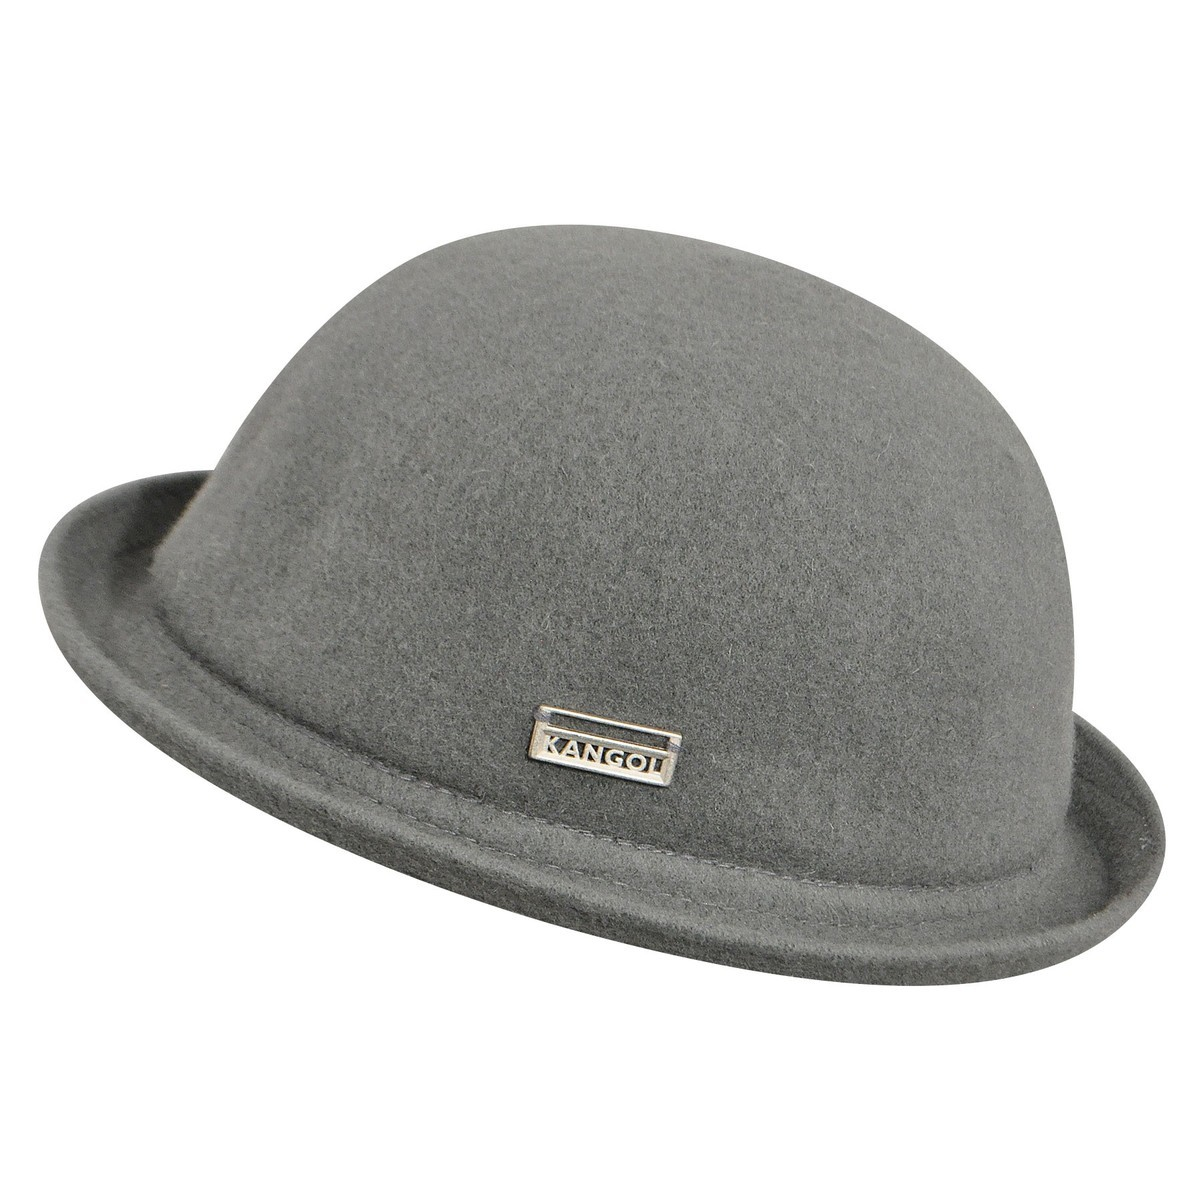 Kangol カンゴール Wool Bombin Slate Grey Bowler & Derby Hats 帽子 Slate Grey